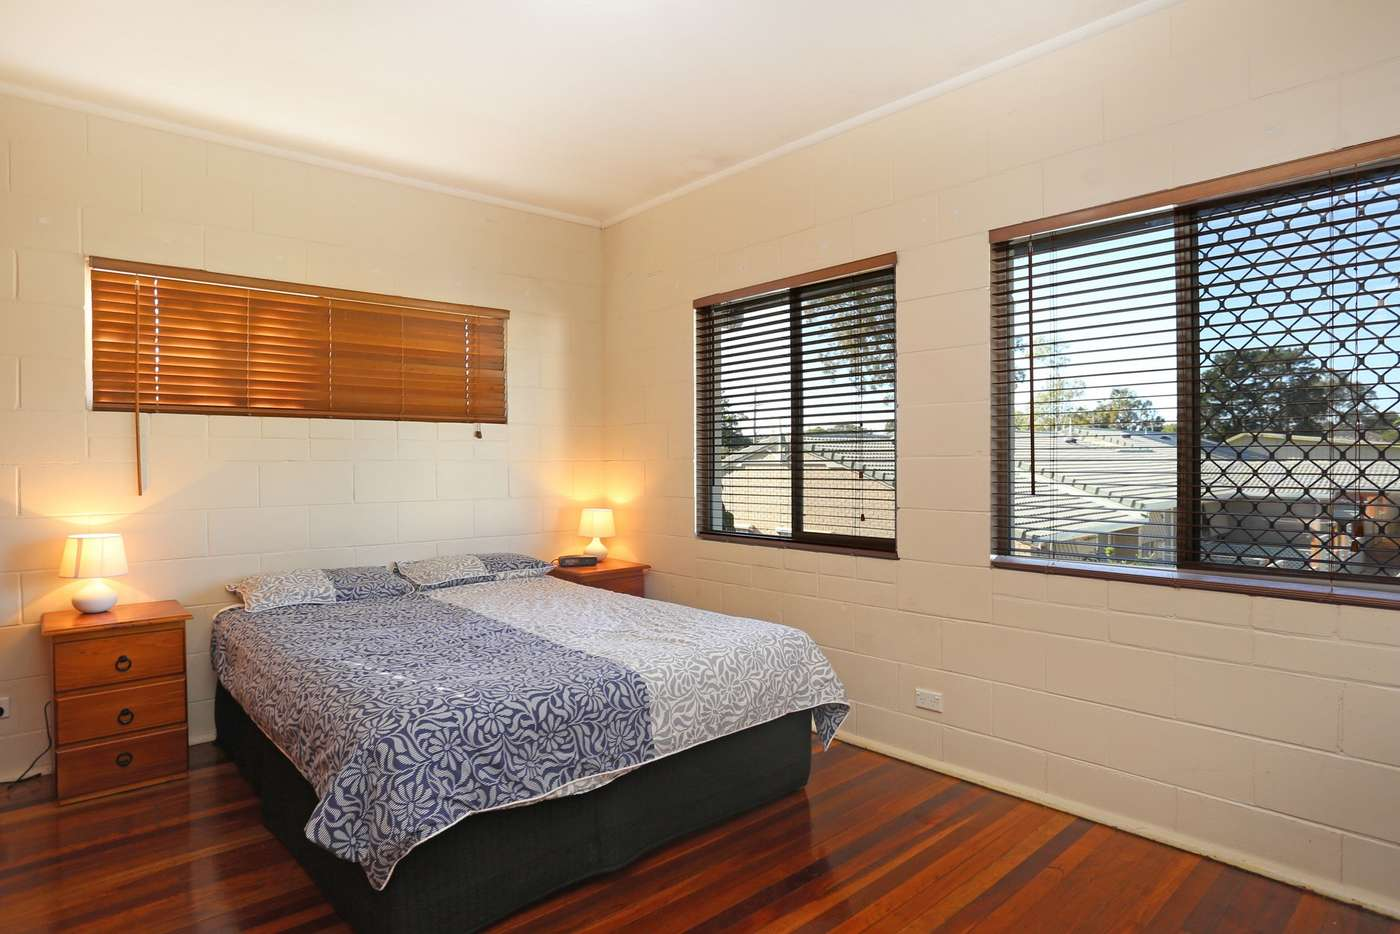 Seventh view of Homely house listing, 10-12 Charles Street, Iluka NSW 2466